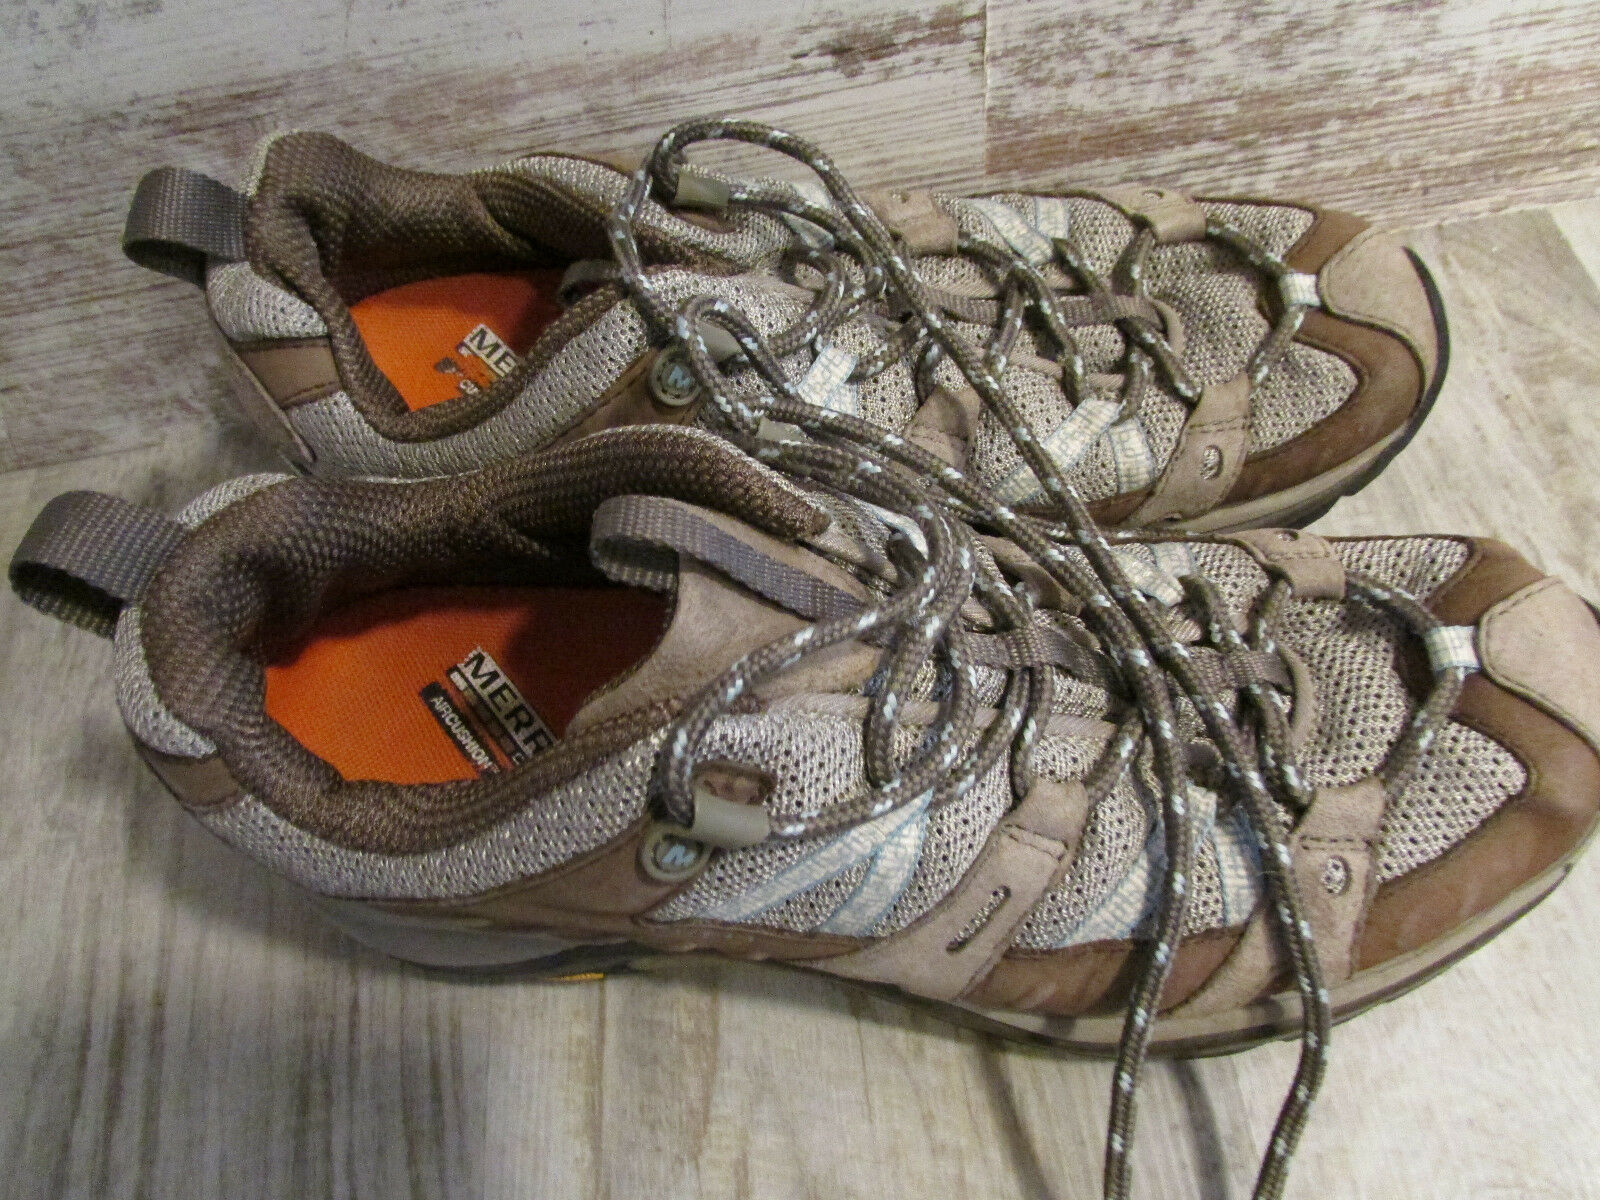 MERRELL ATHLETIC SNEAKER SHOES WOMENS 8.5 BROWN HIKING SHOES SIREN SPORT